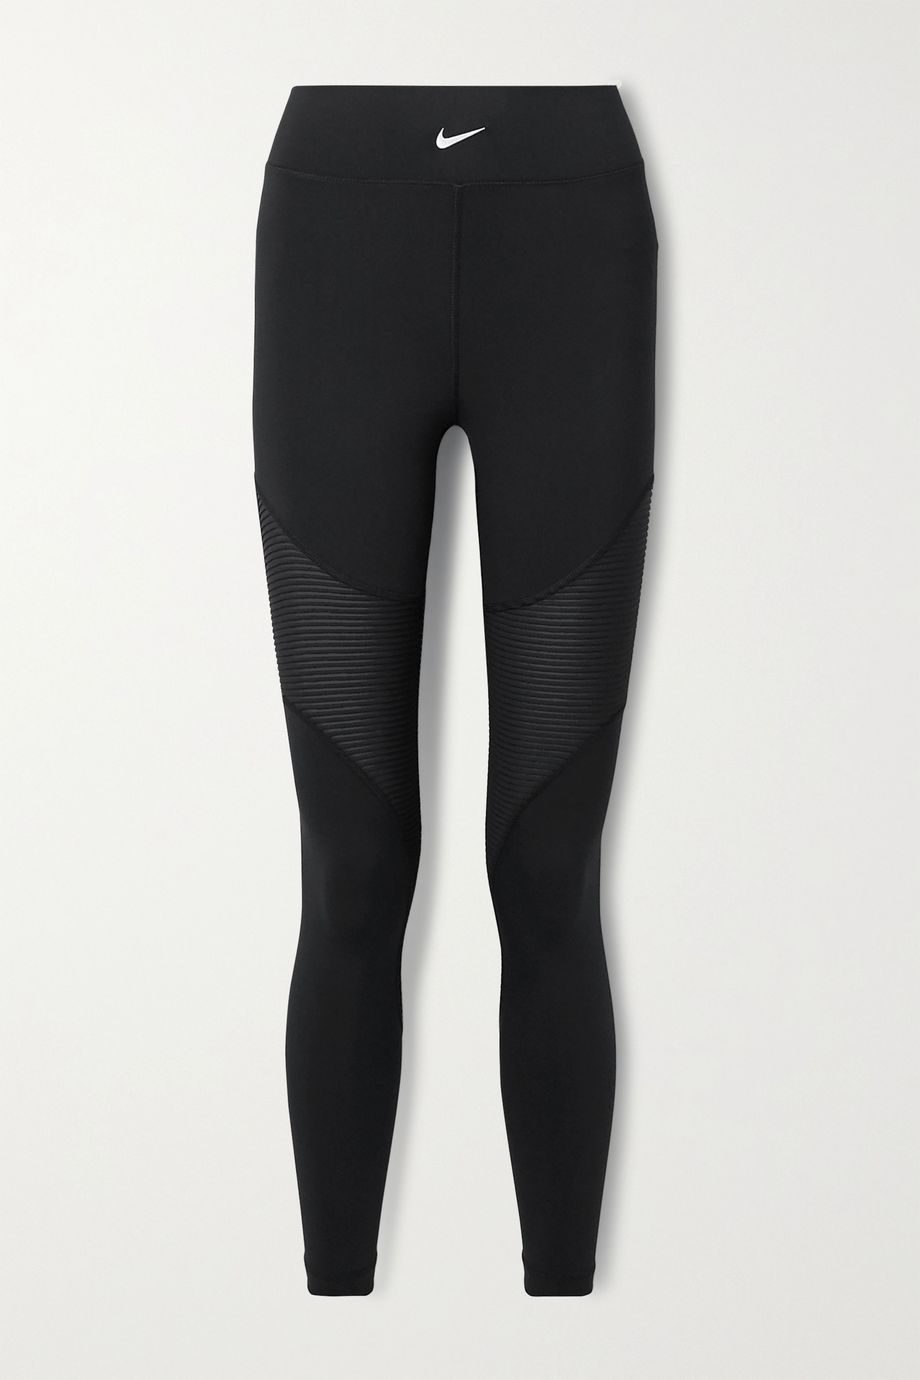 Nike Pro Aeroadapt Stretch-Leggings